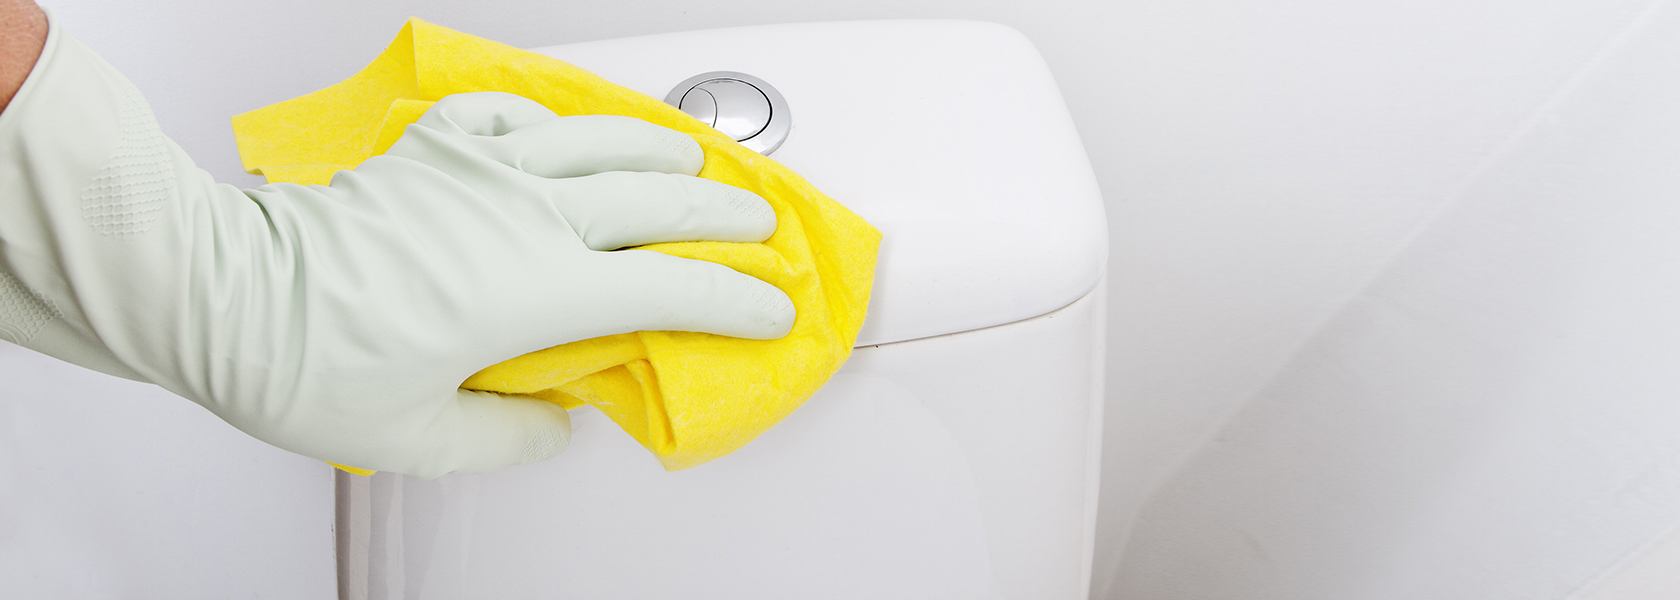 Natural Ways To Clean Your Washroom